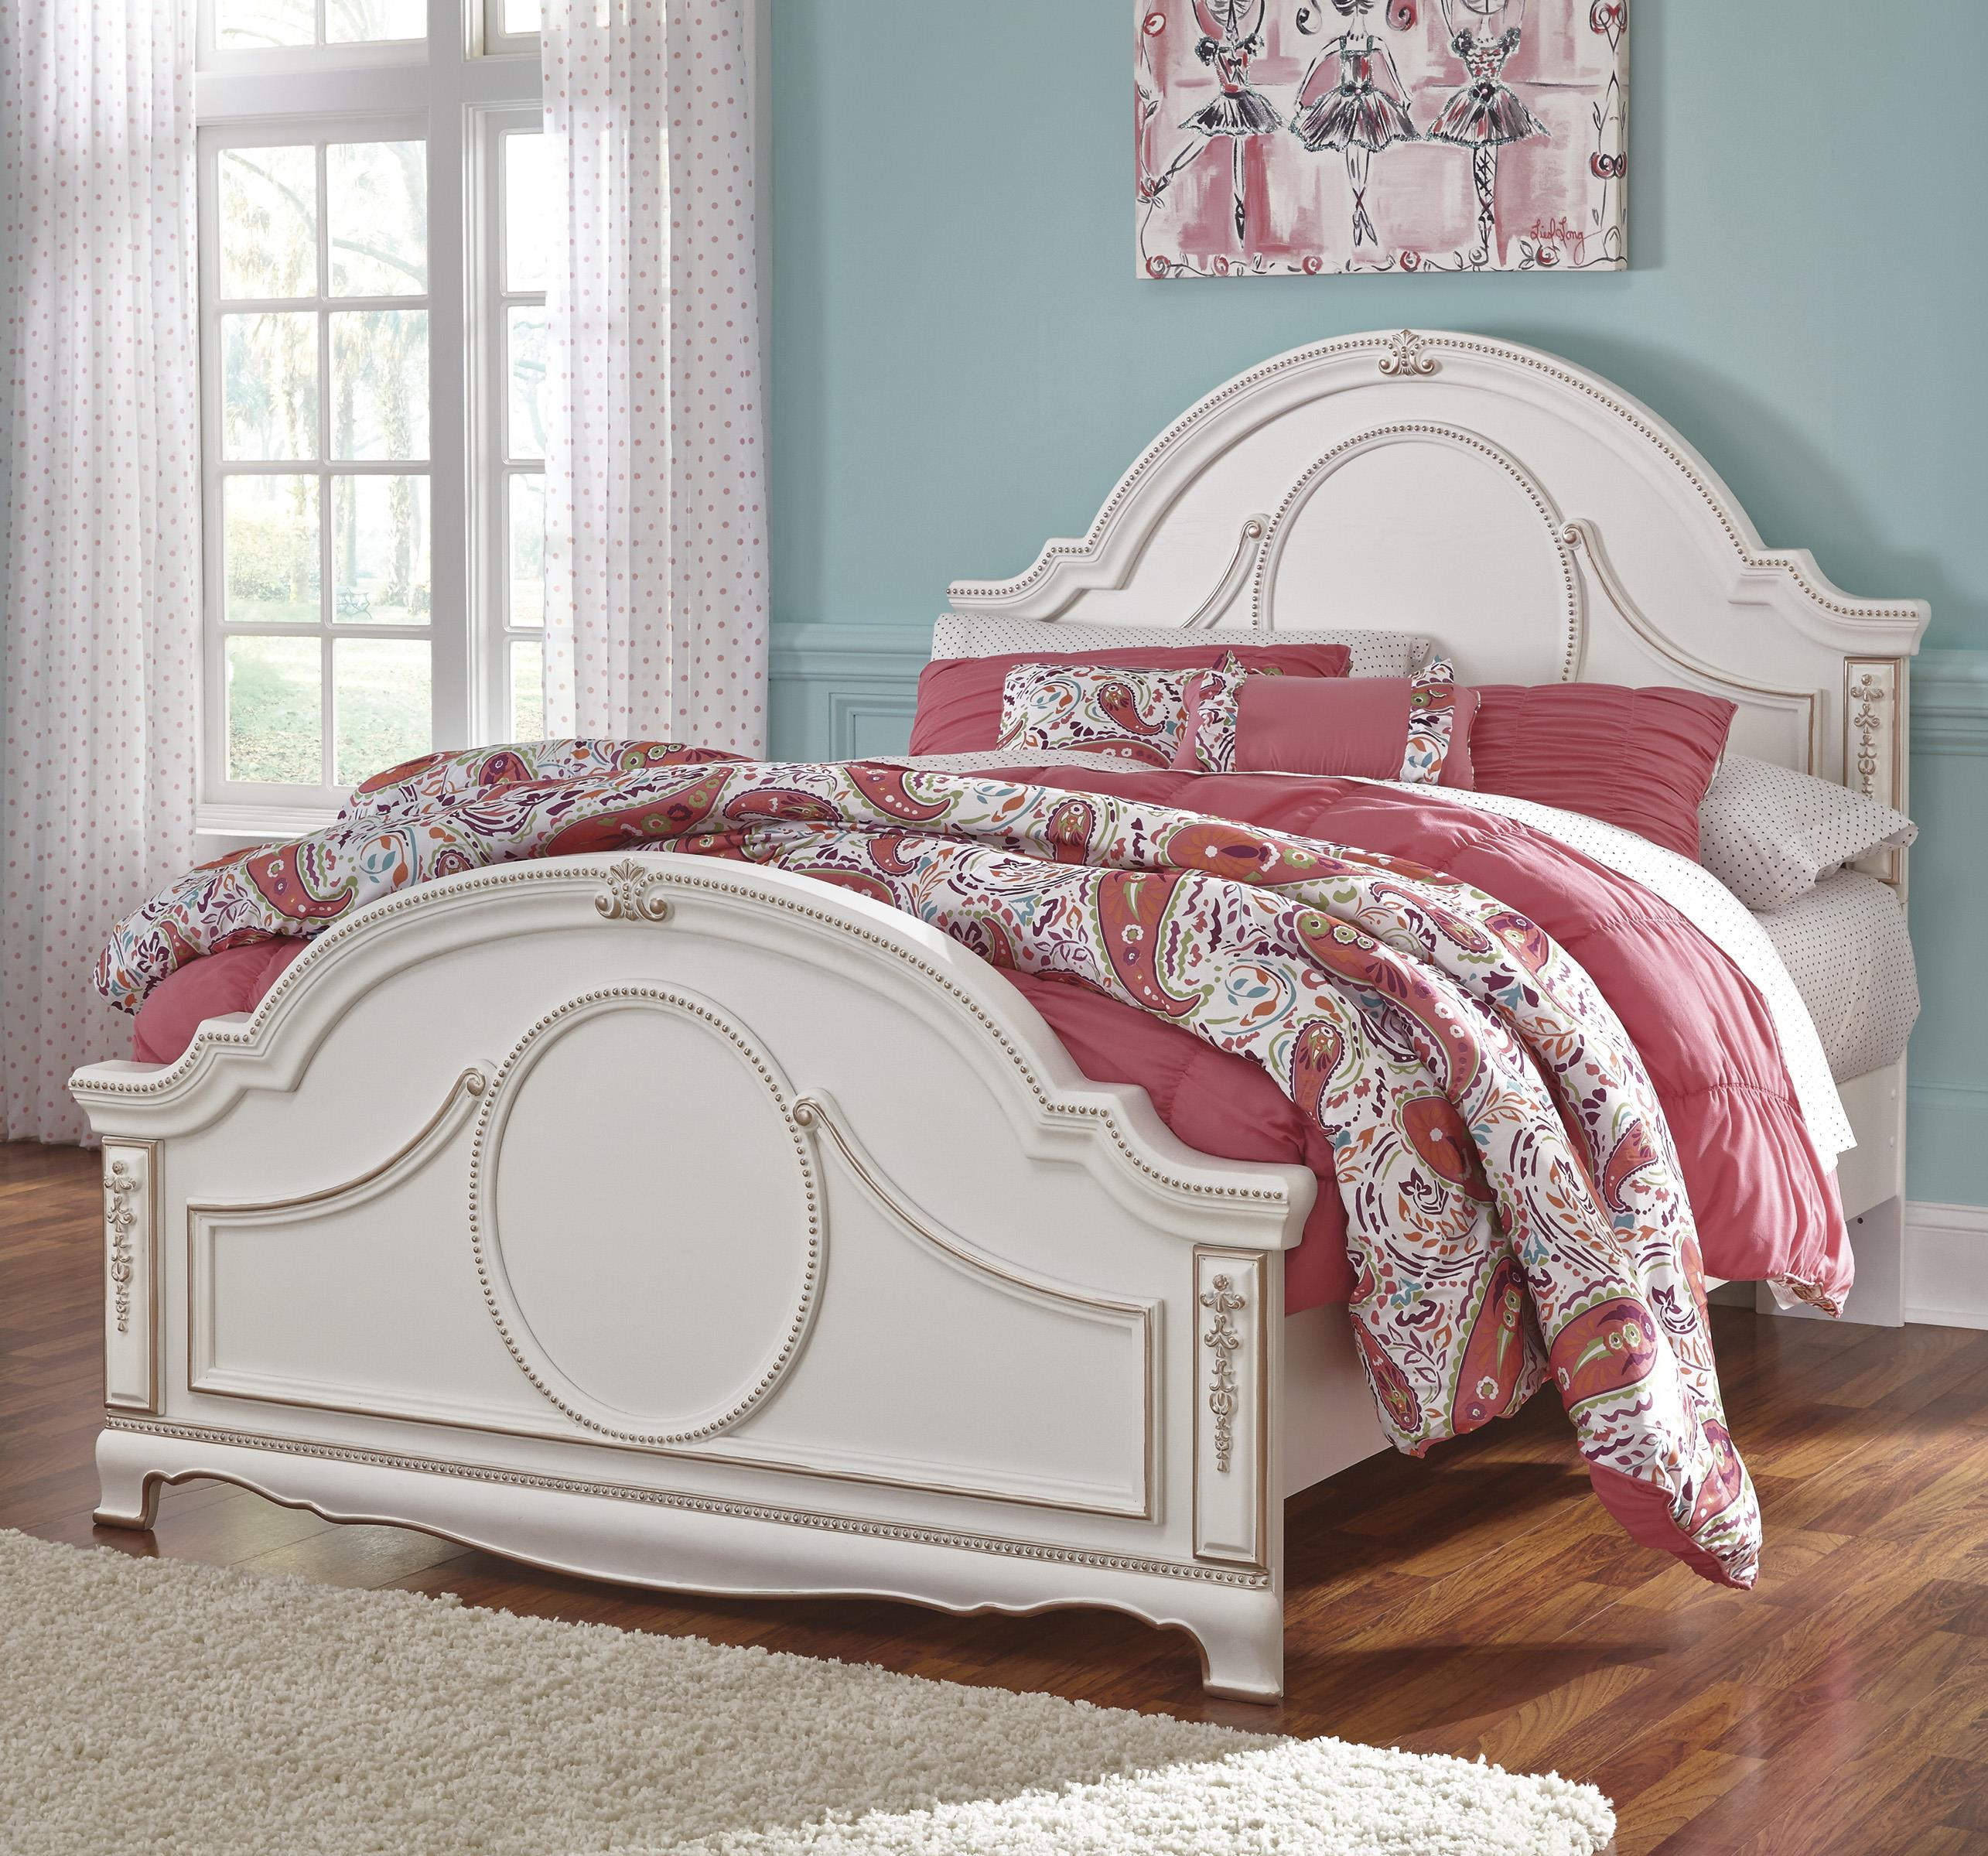 Ornate Traditional Full Panel Headboard with Rose Gold Color